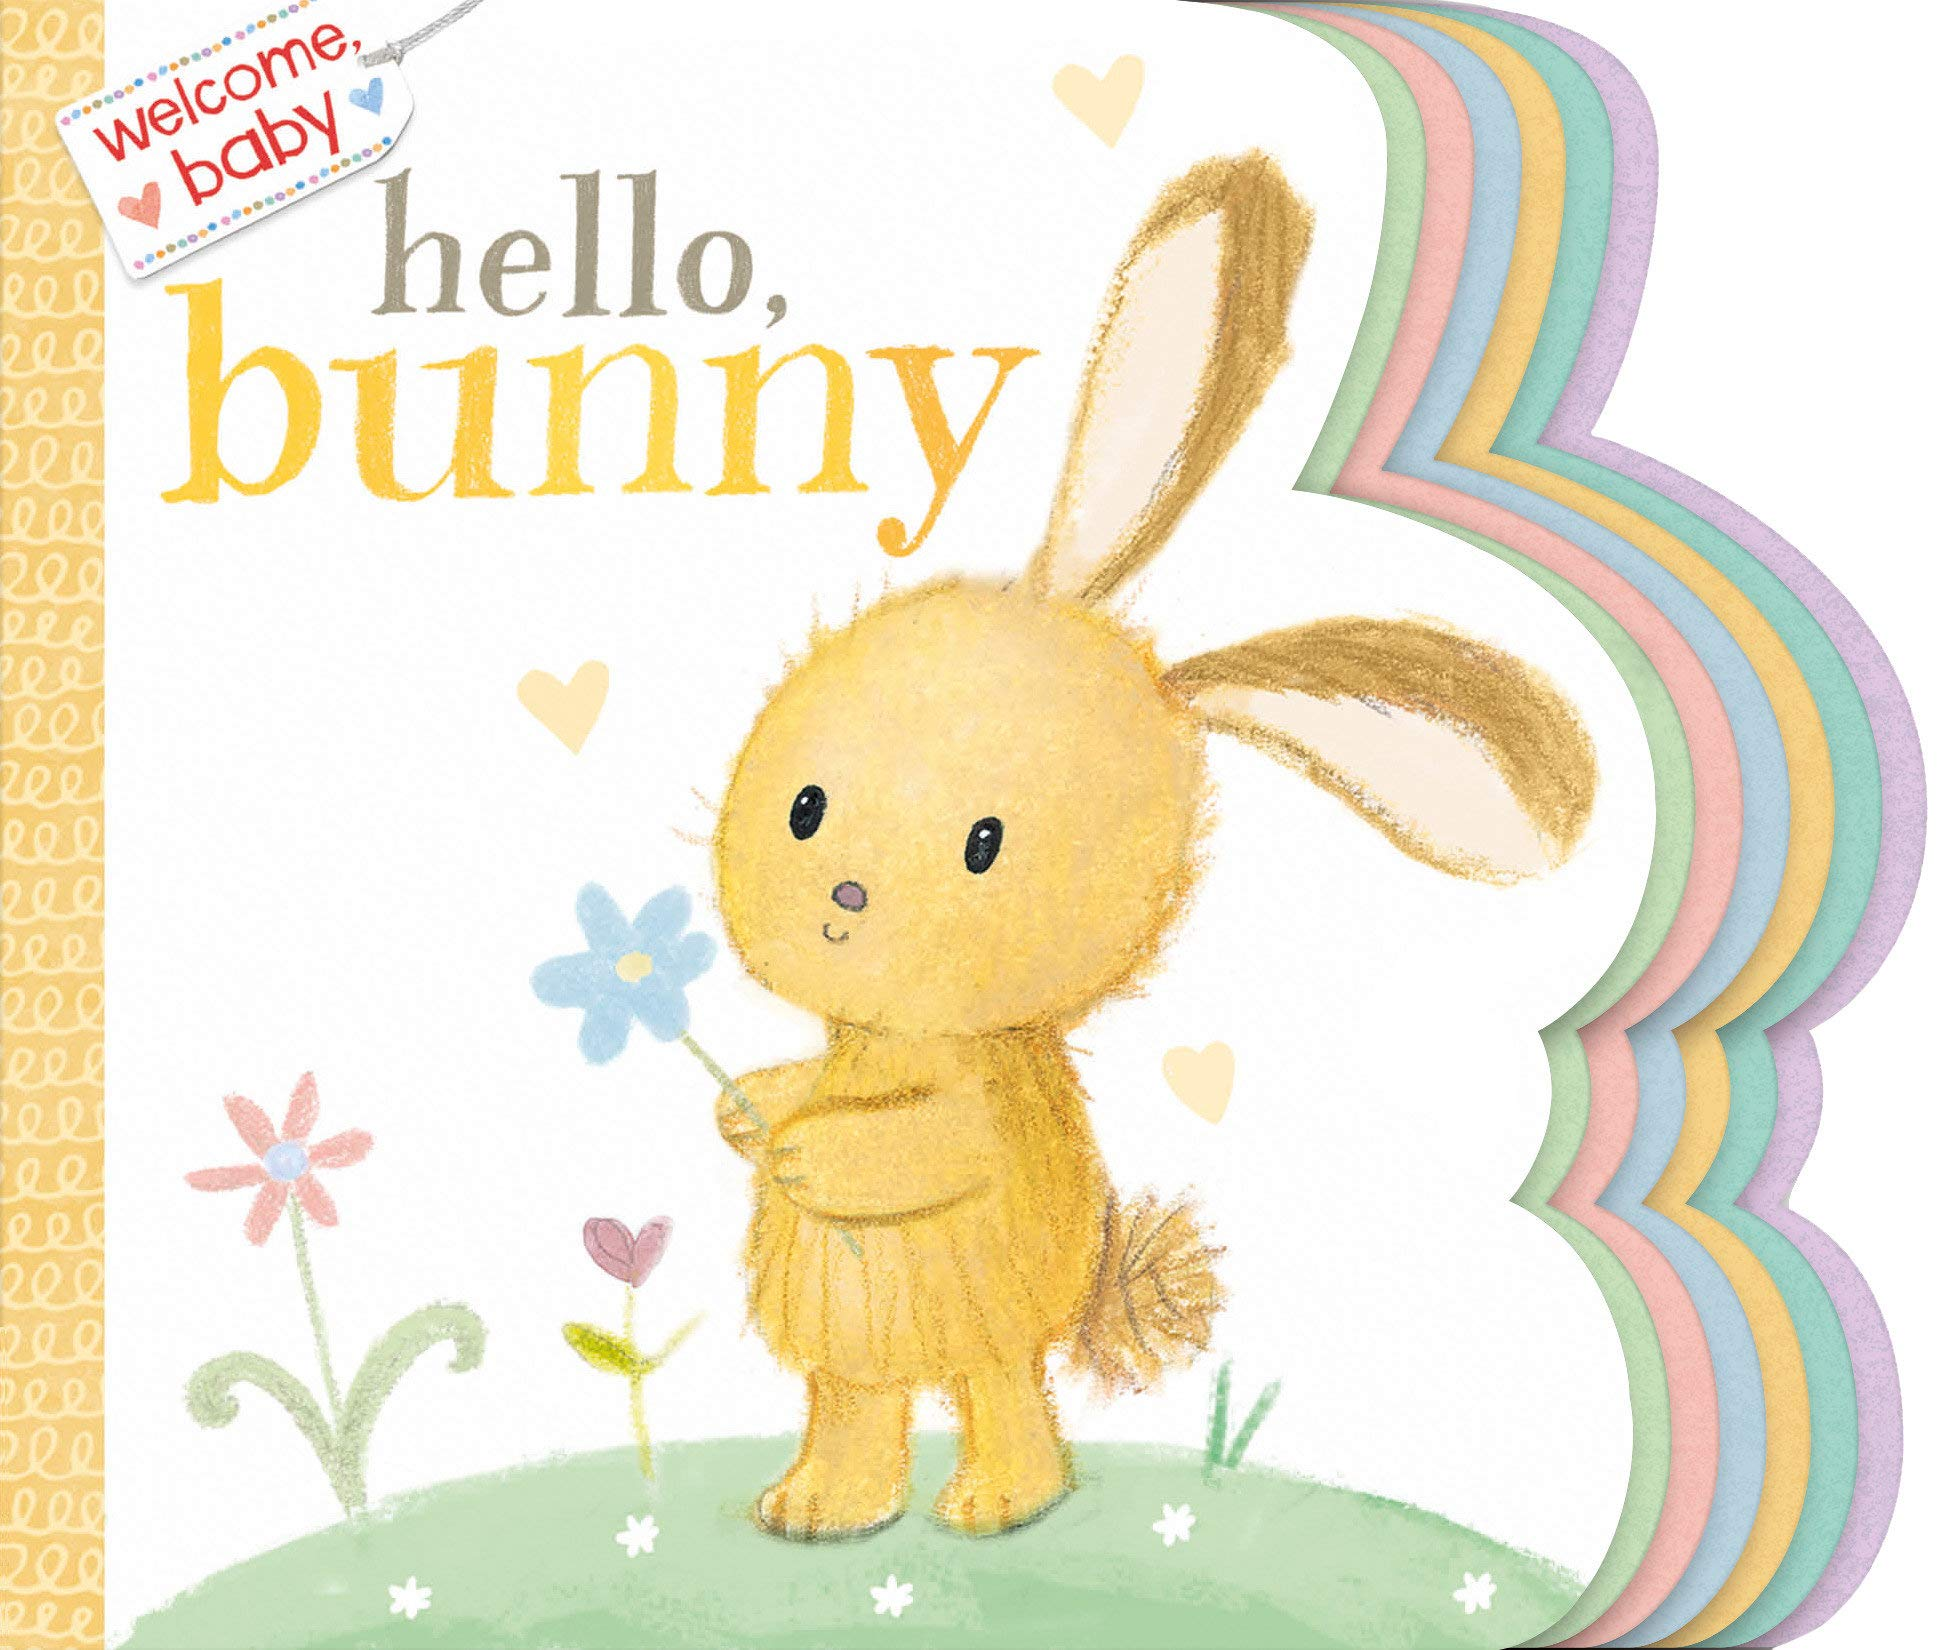 Book - Hello, Bunny: Welcome, Baby